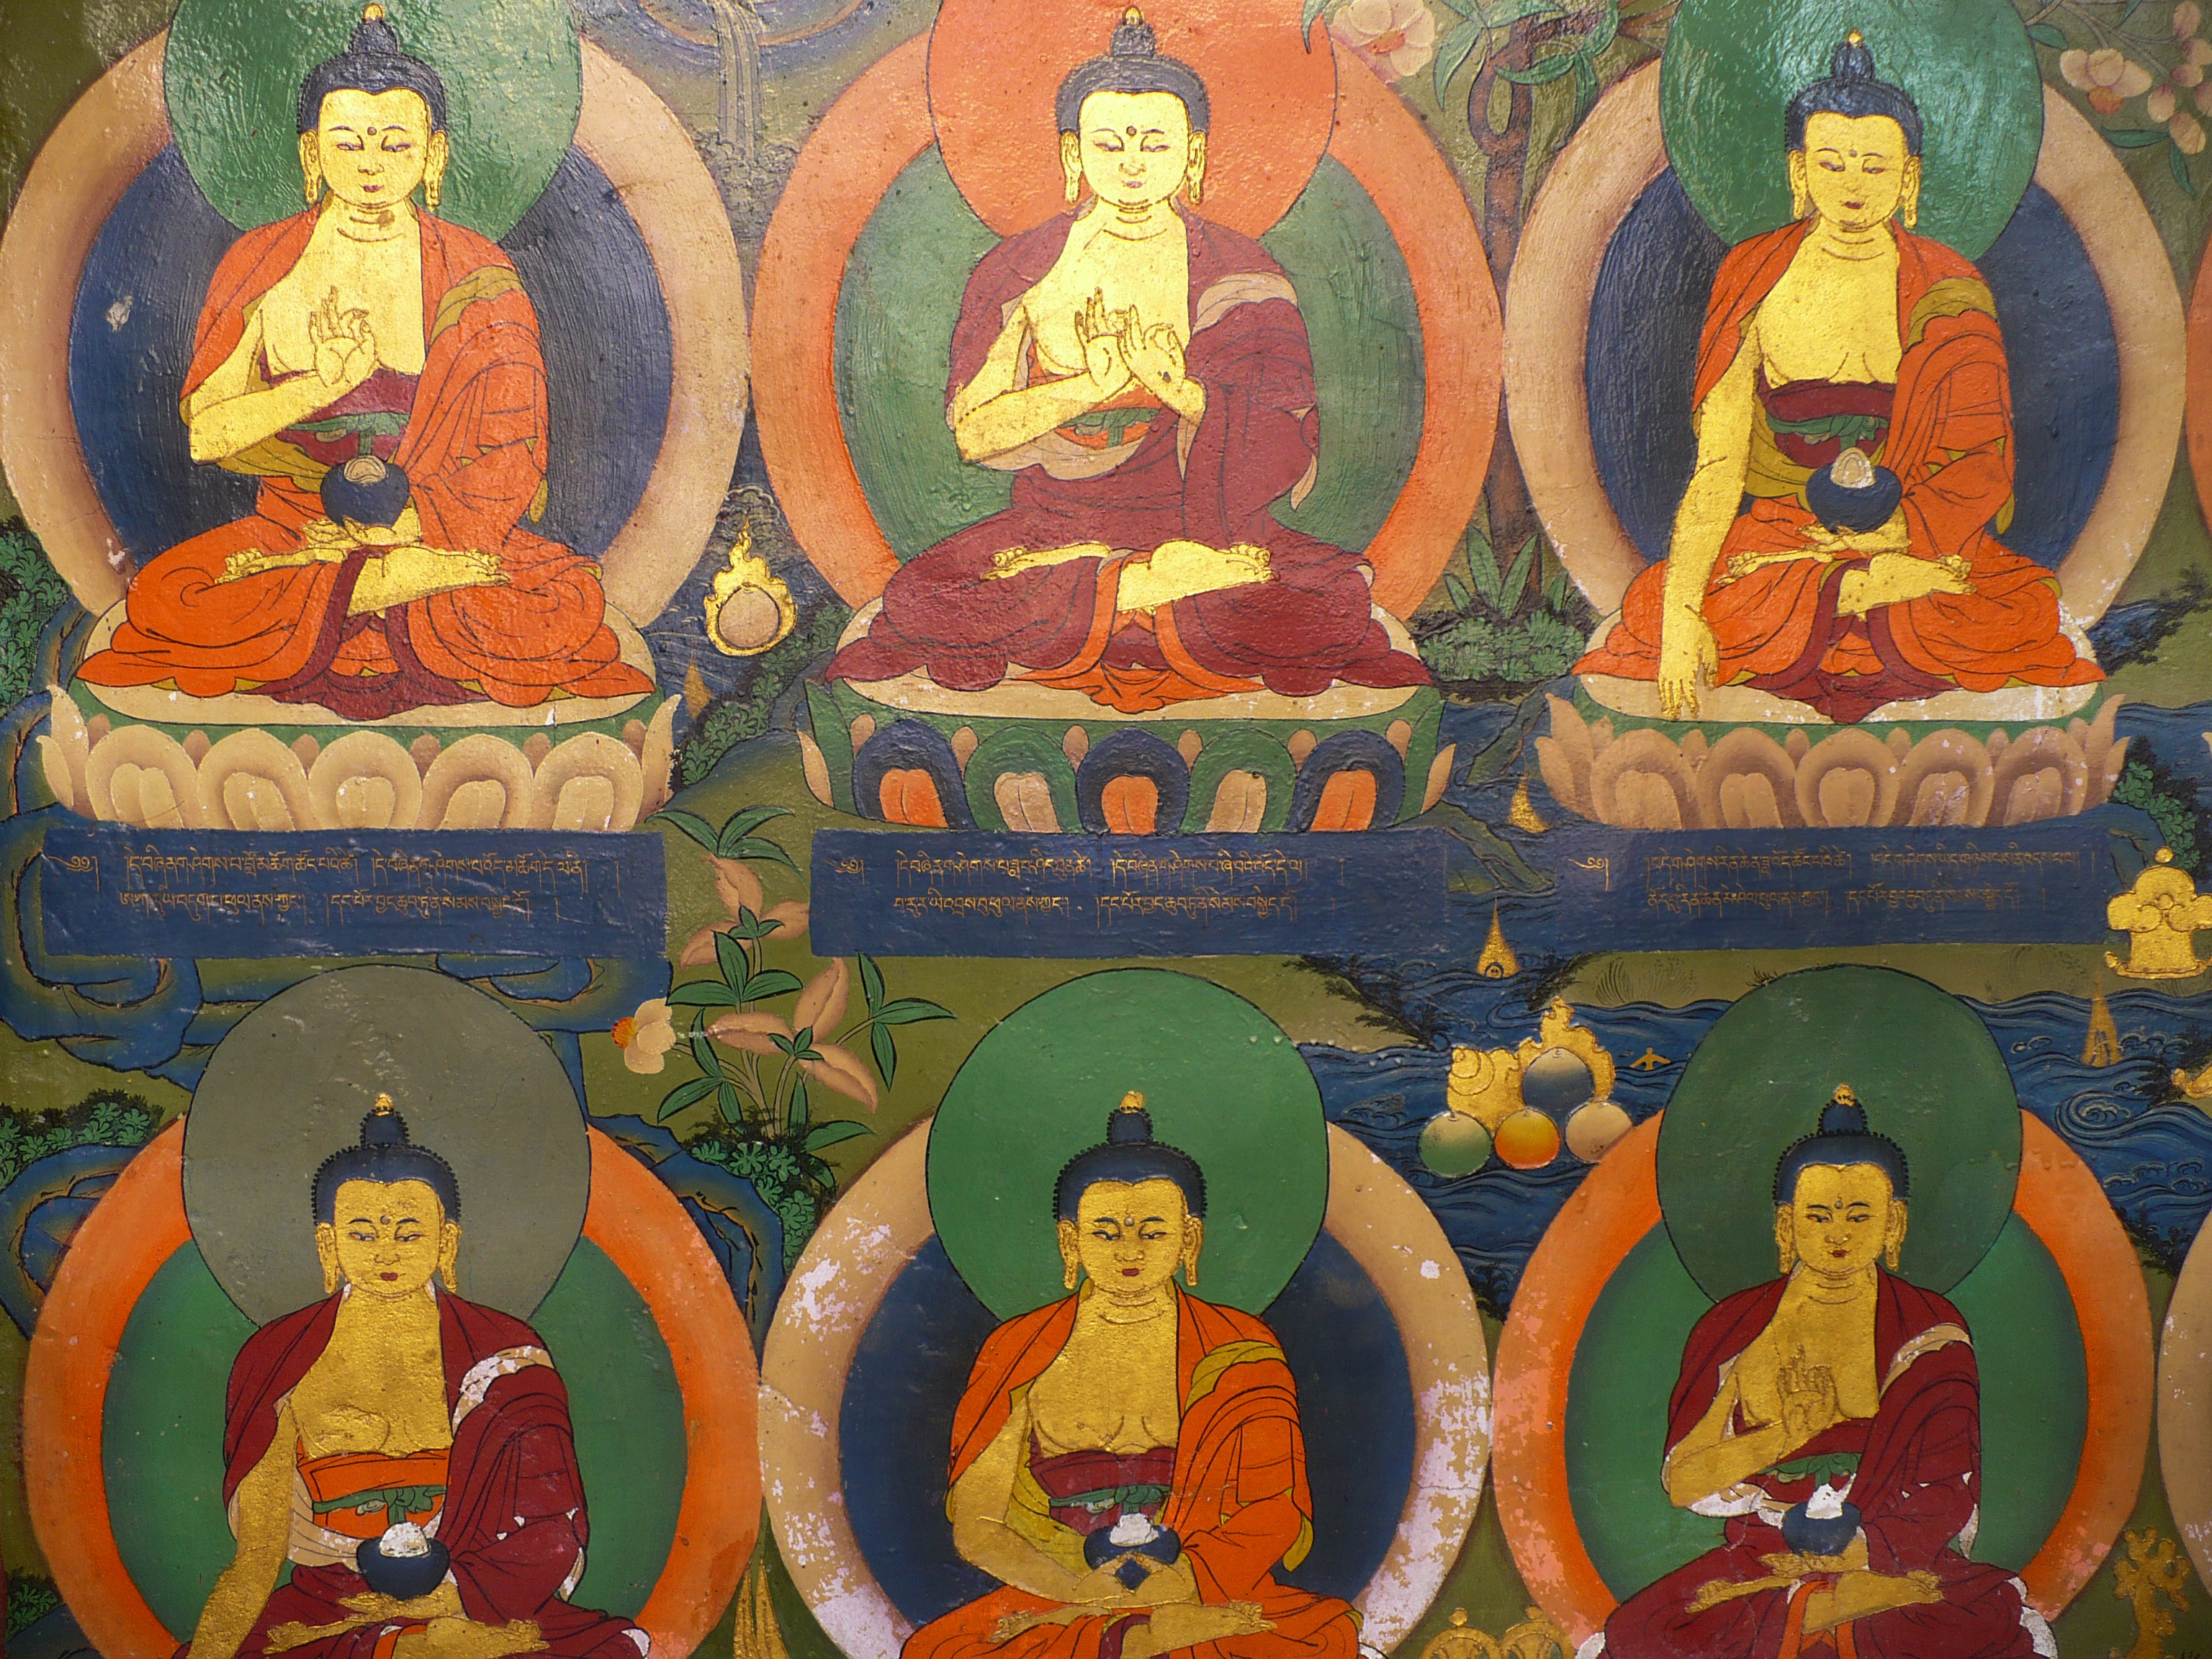 Each seated pose of the Buddha carries a different meaning.